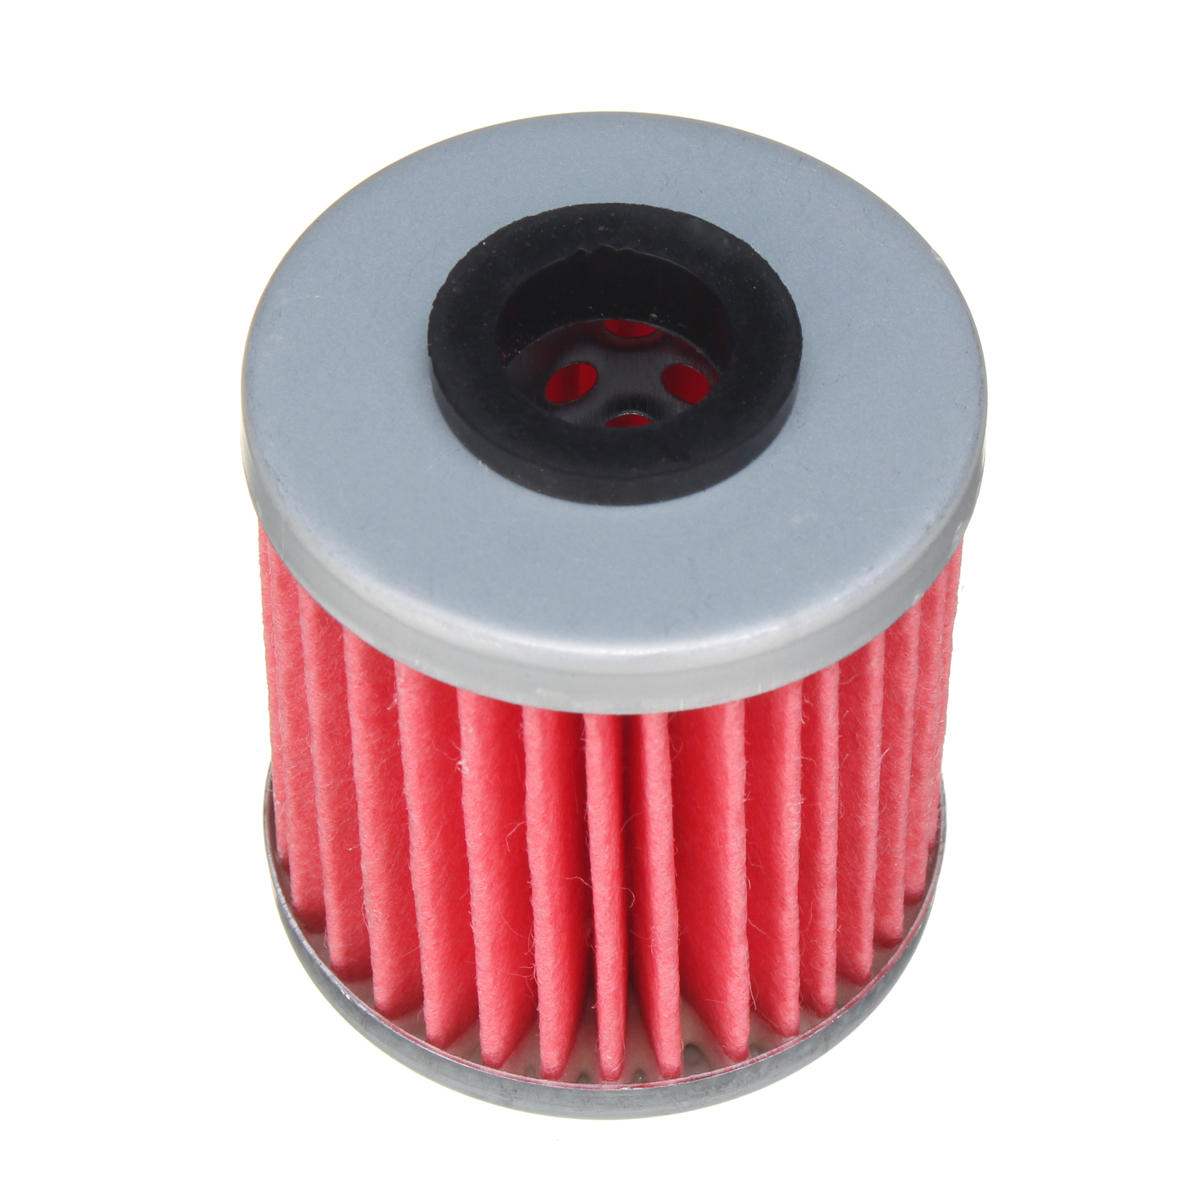 Oil Fuel Filter Hf207 For Kawasaki Kx250f Kx450f 04 17 Suzuki Rmz250 Rmz450 Rmx450z